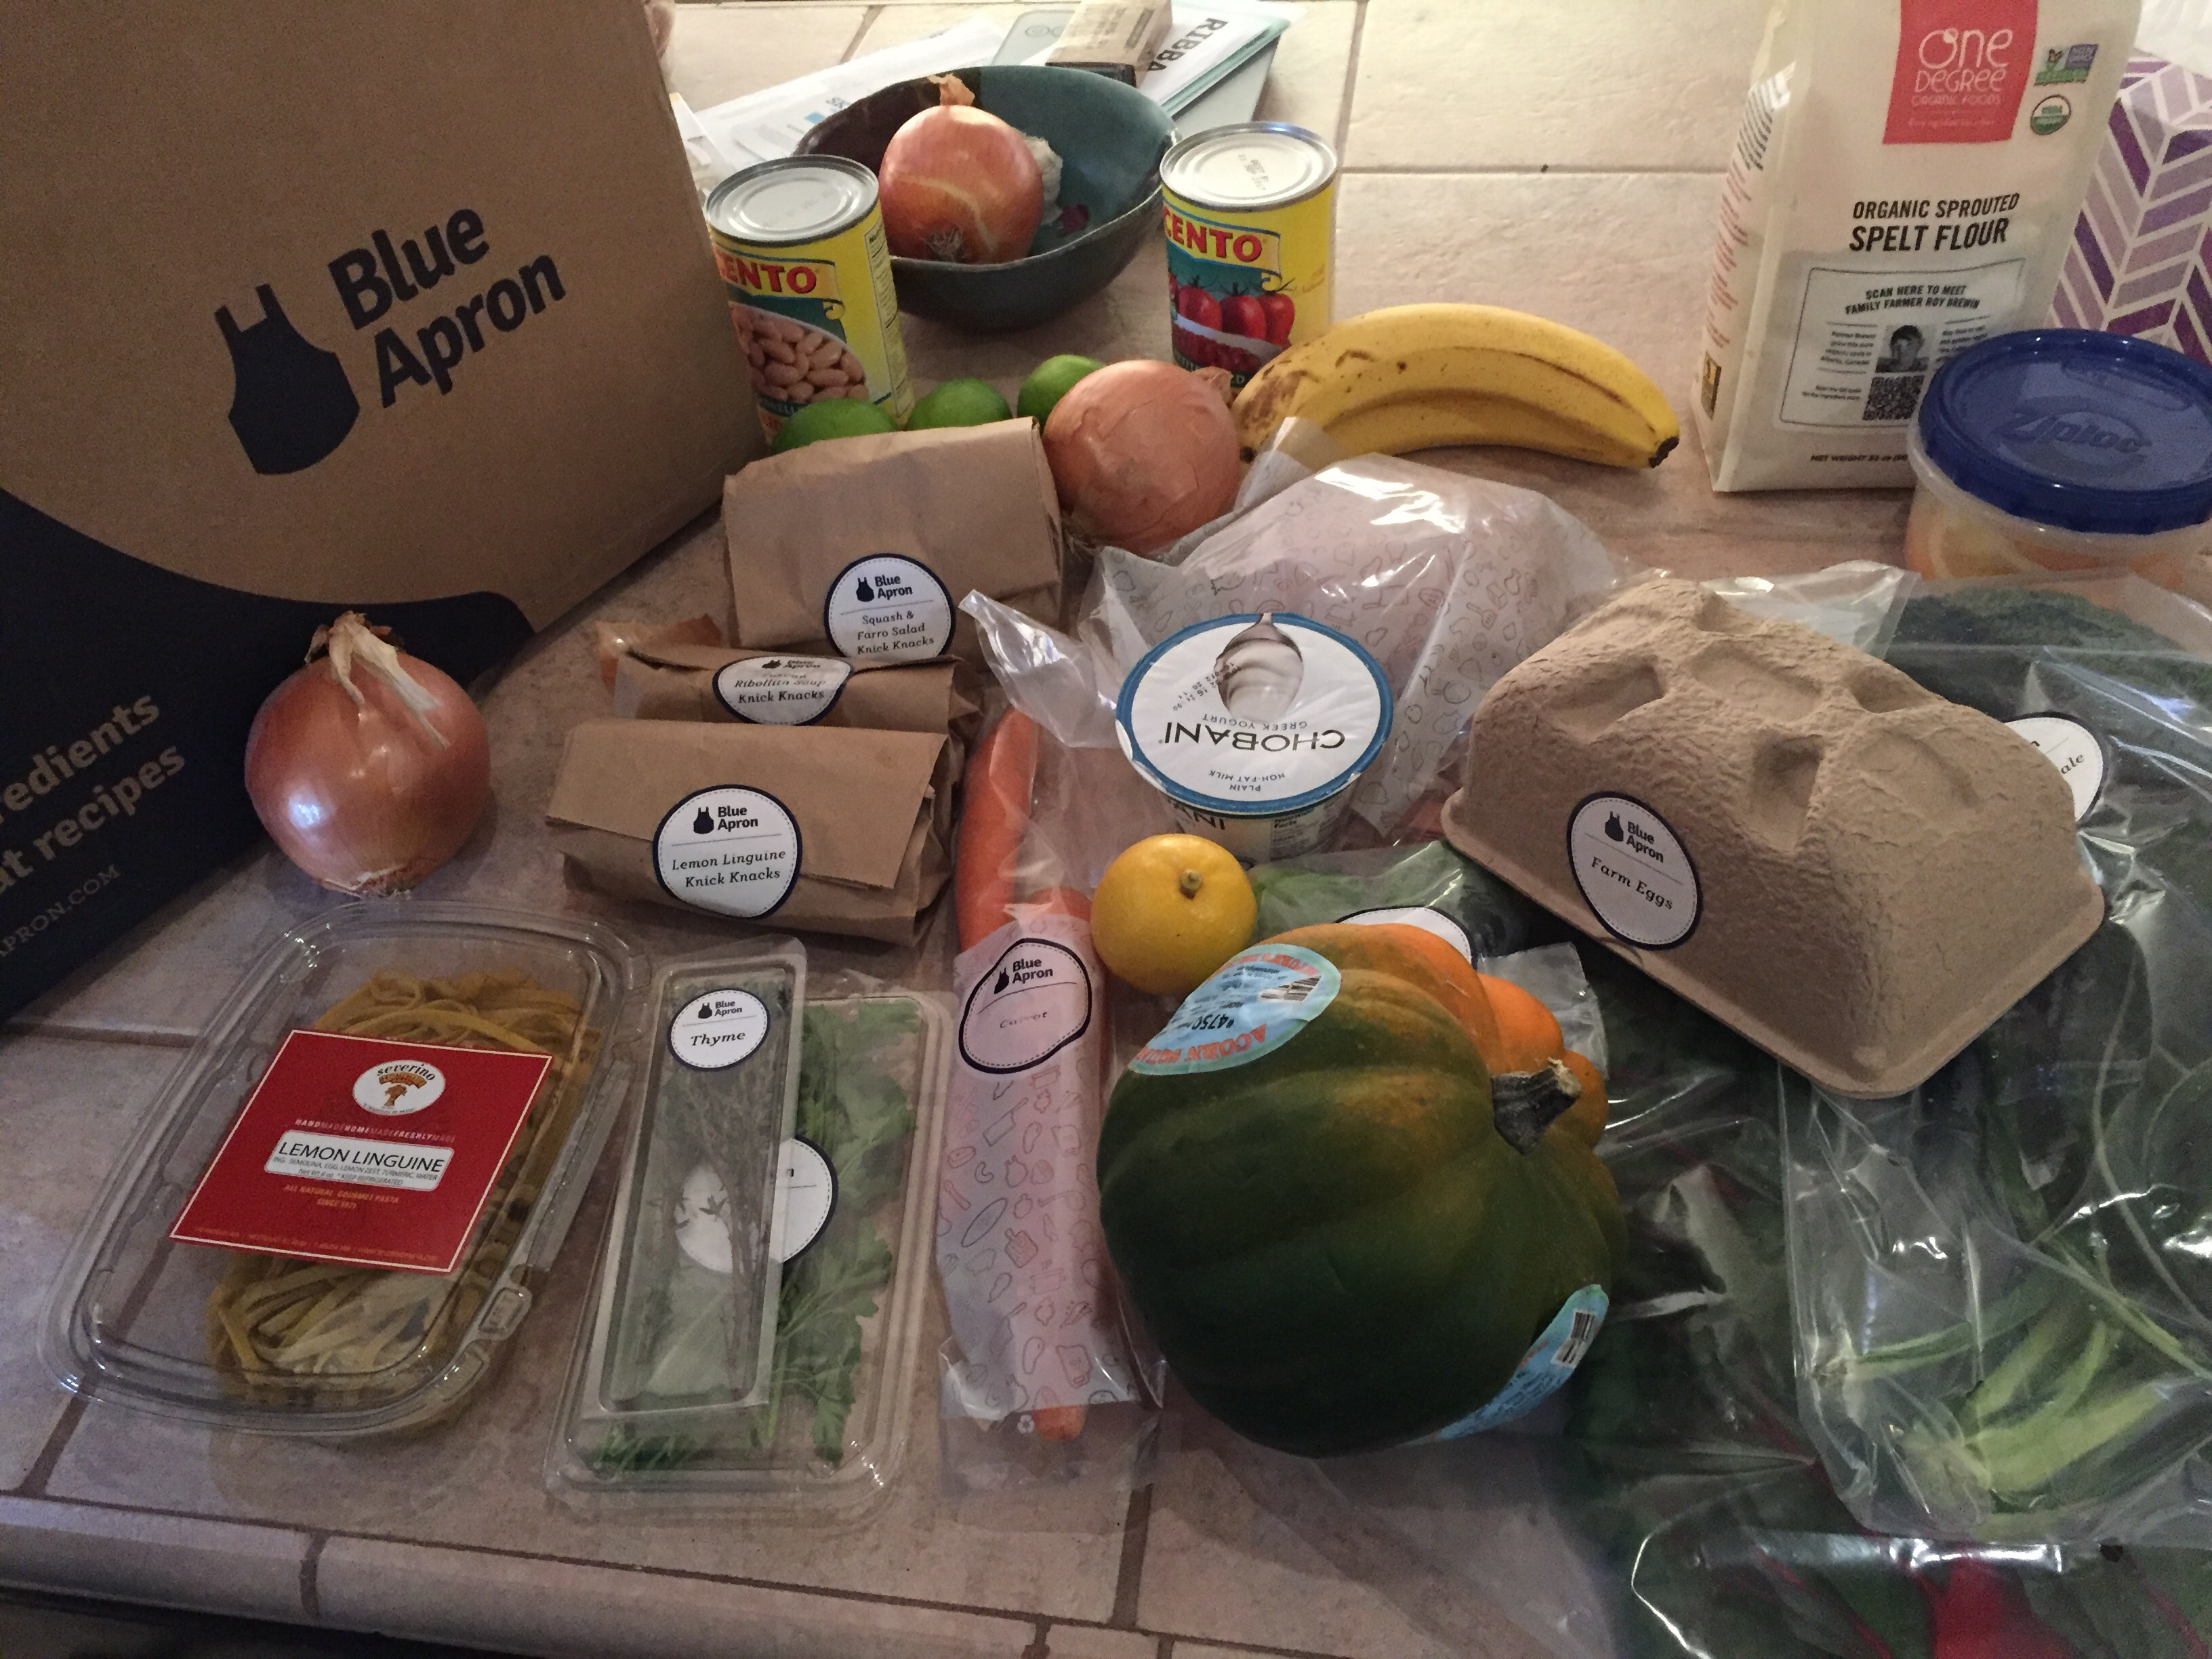 Blue apron fails - The Friday Before My Birthday We Got Our First Box I Hadn T Requested Vegetarian But Selected No Beef So Everything That Week Came Vegetarian